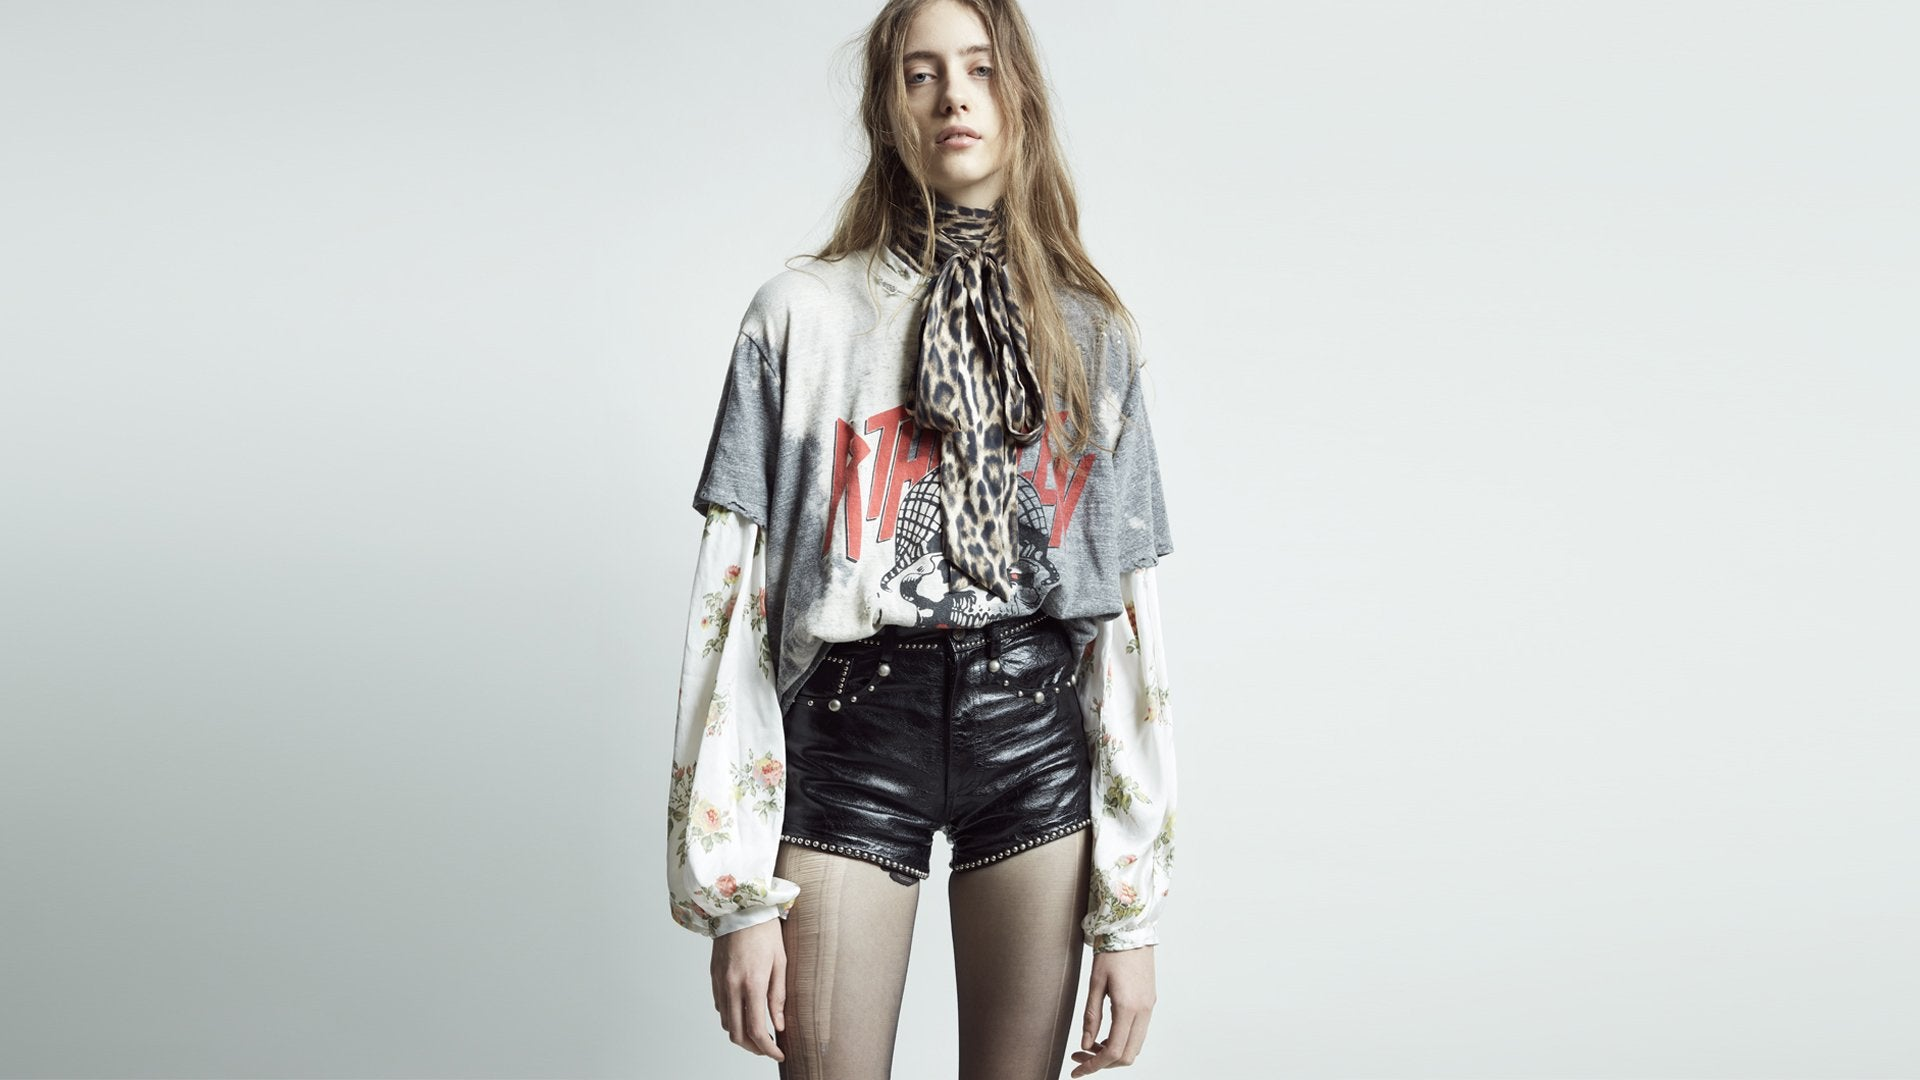 Womens PF19 Lookbook Image 2